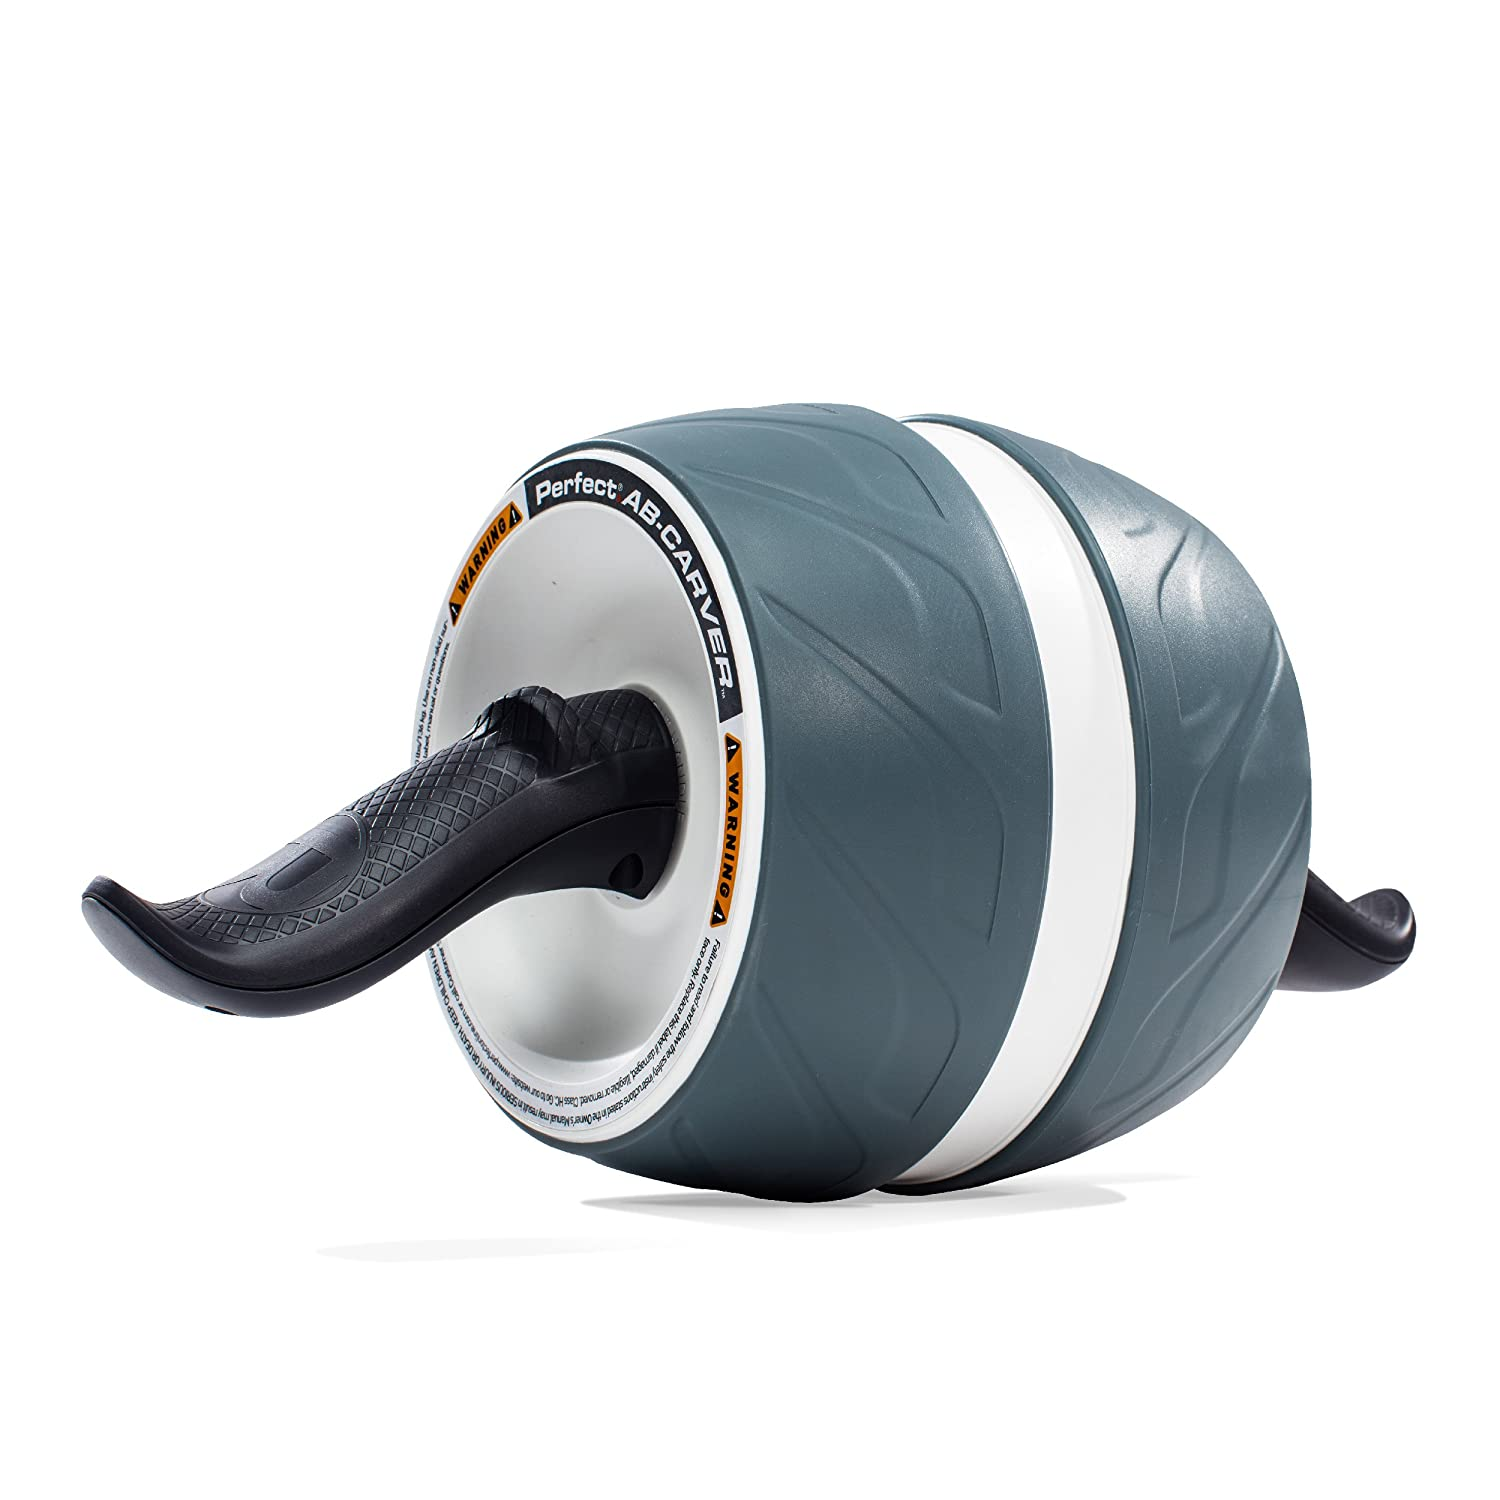 Perfect Fitness Ab Carver Roller for Core Workouts